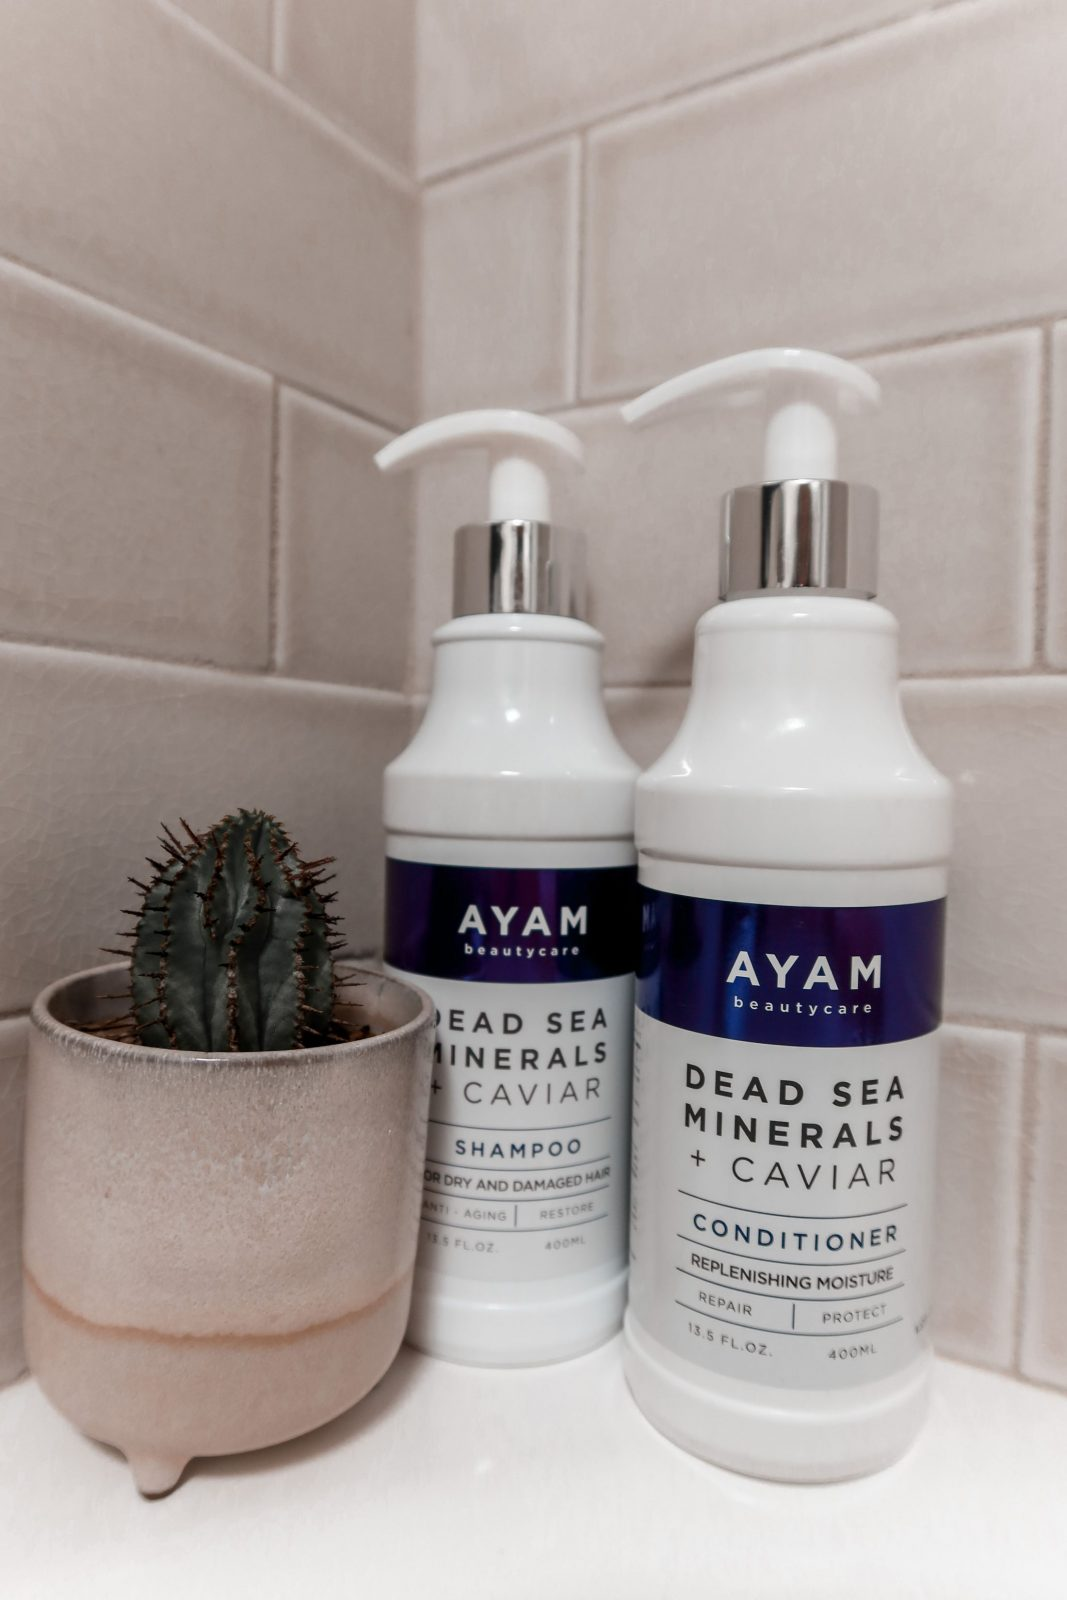 This is a close up of Ayam Beautycare Dead Sea & Caviar shampoo and conditioner in Adaleta's bathroom.